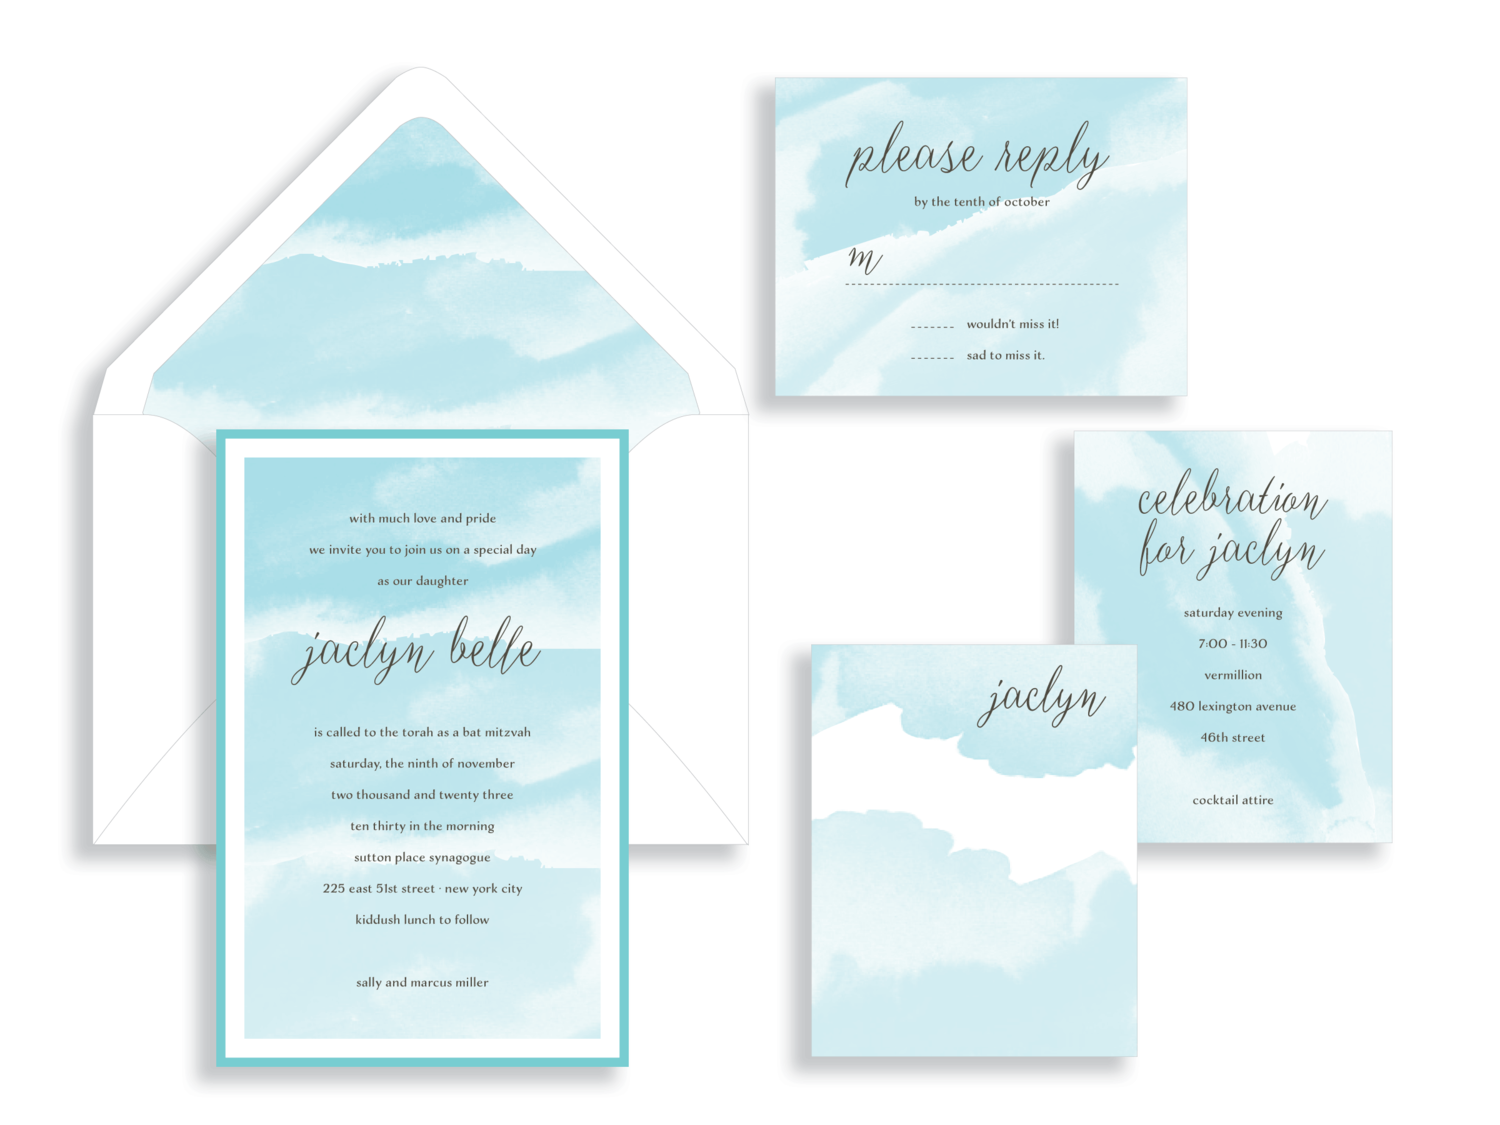 Jaclyn tiffany blue watercolor bat mitzvah invitation in the Washington DC Metro area from Staccato.  Customize colors and layers!